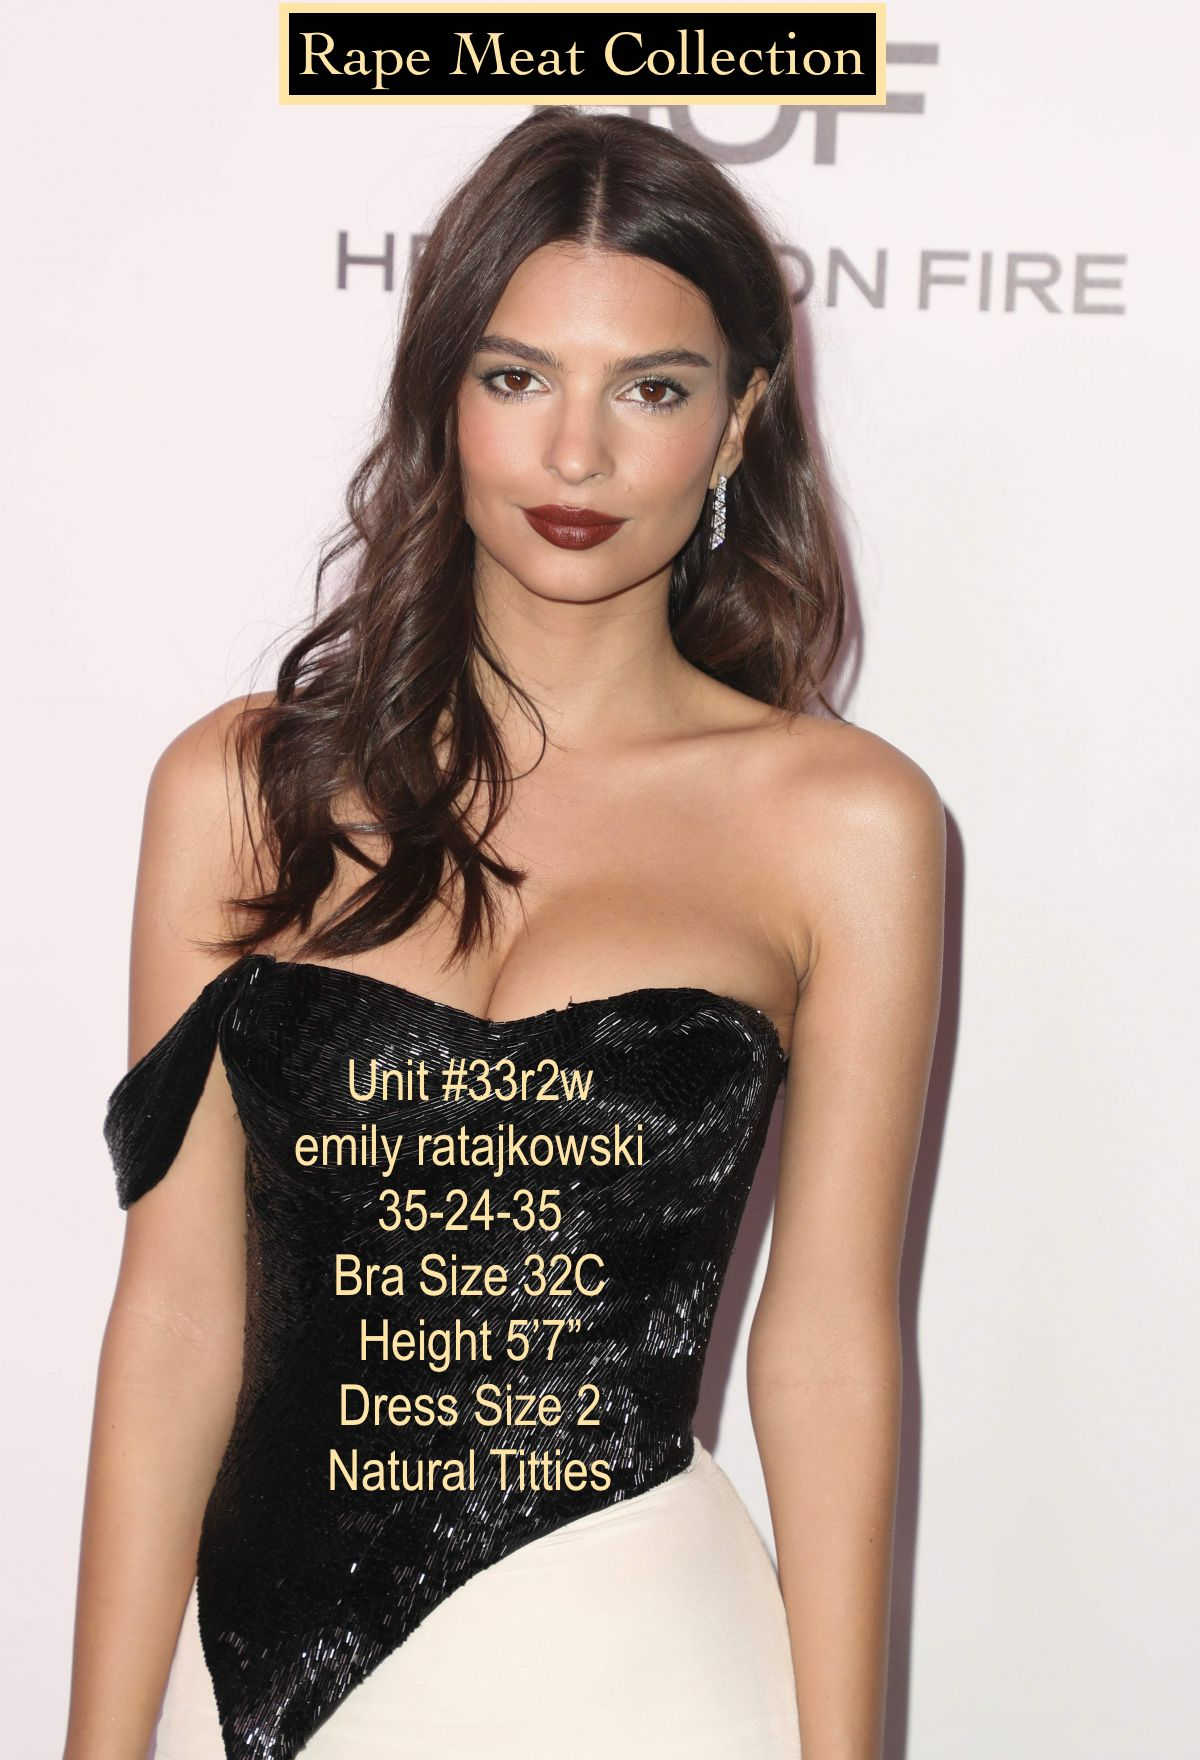 _emily-ratajkowski-at-harper-s-bazaar-150-most-fashionable-women-party-in-hollywood-01-27-2017_1.jpg